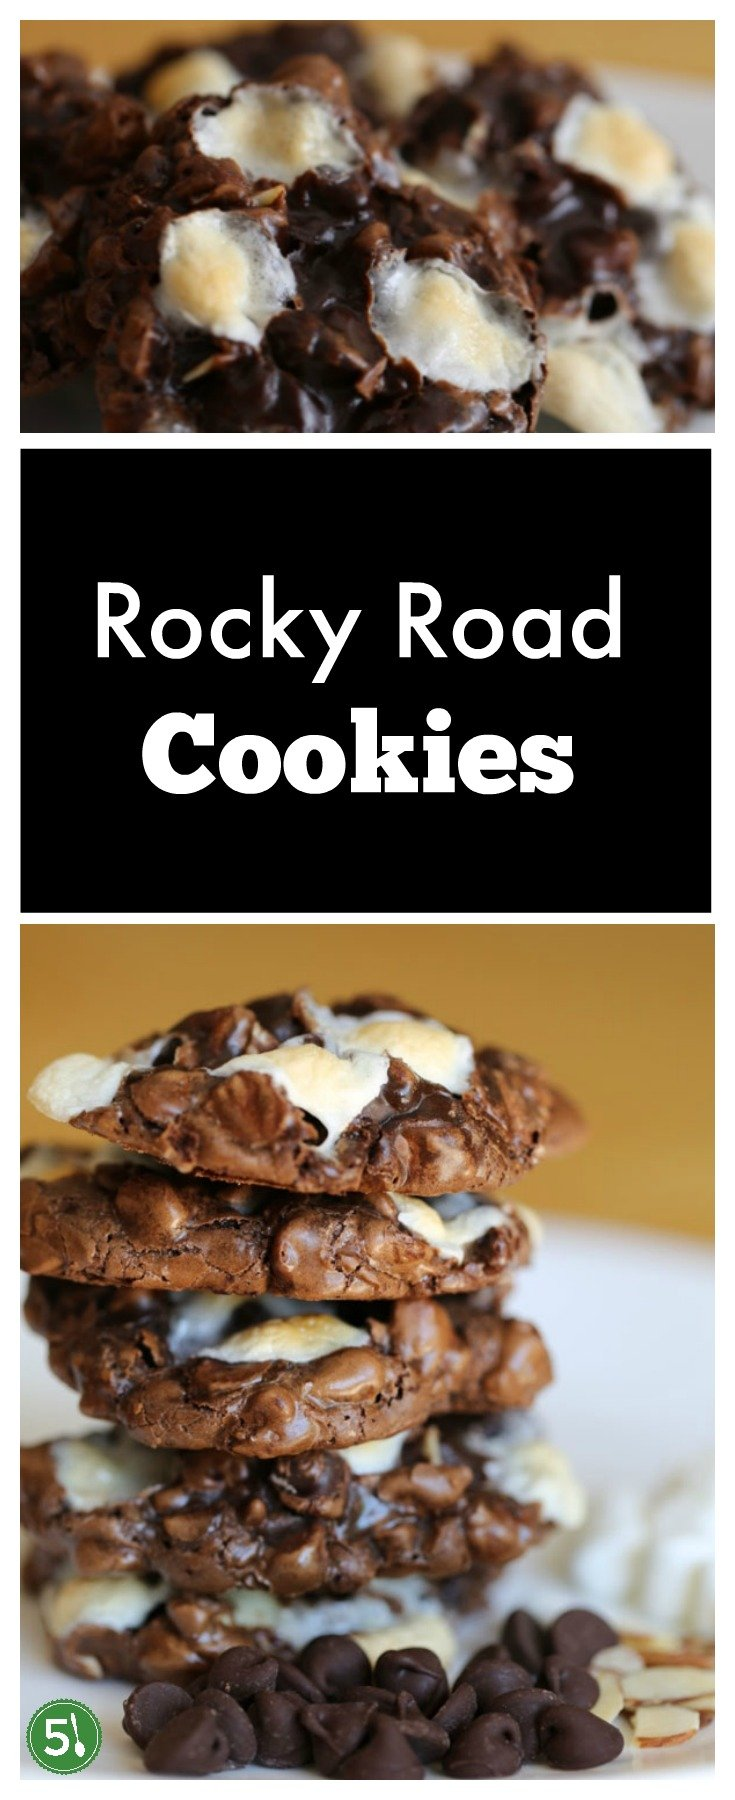 Easy rocky road cookies recipe that is full of ooeey gooey, chocolatey goodness that is a decadent treat to savor.